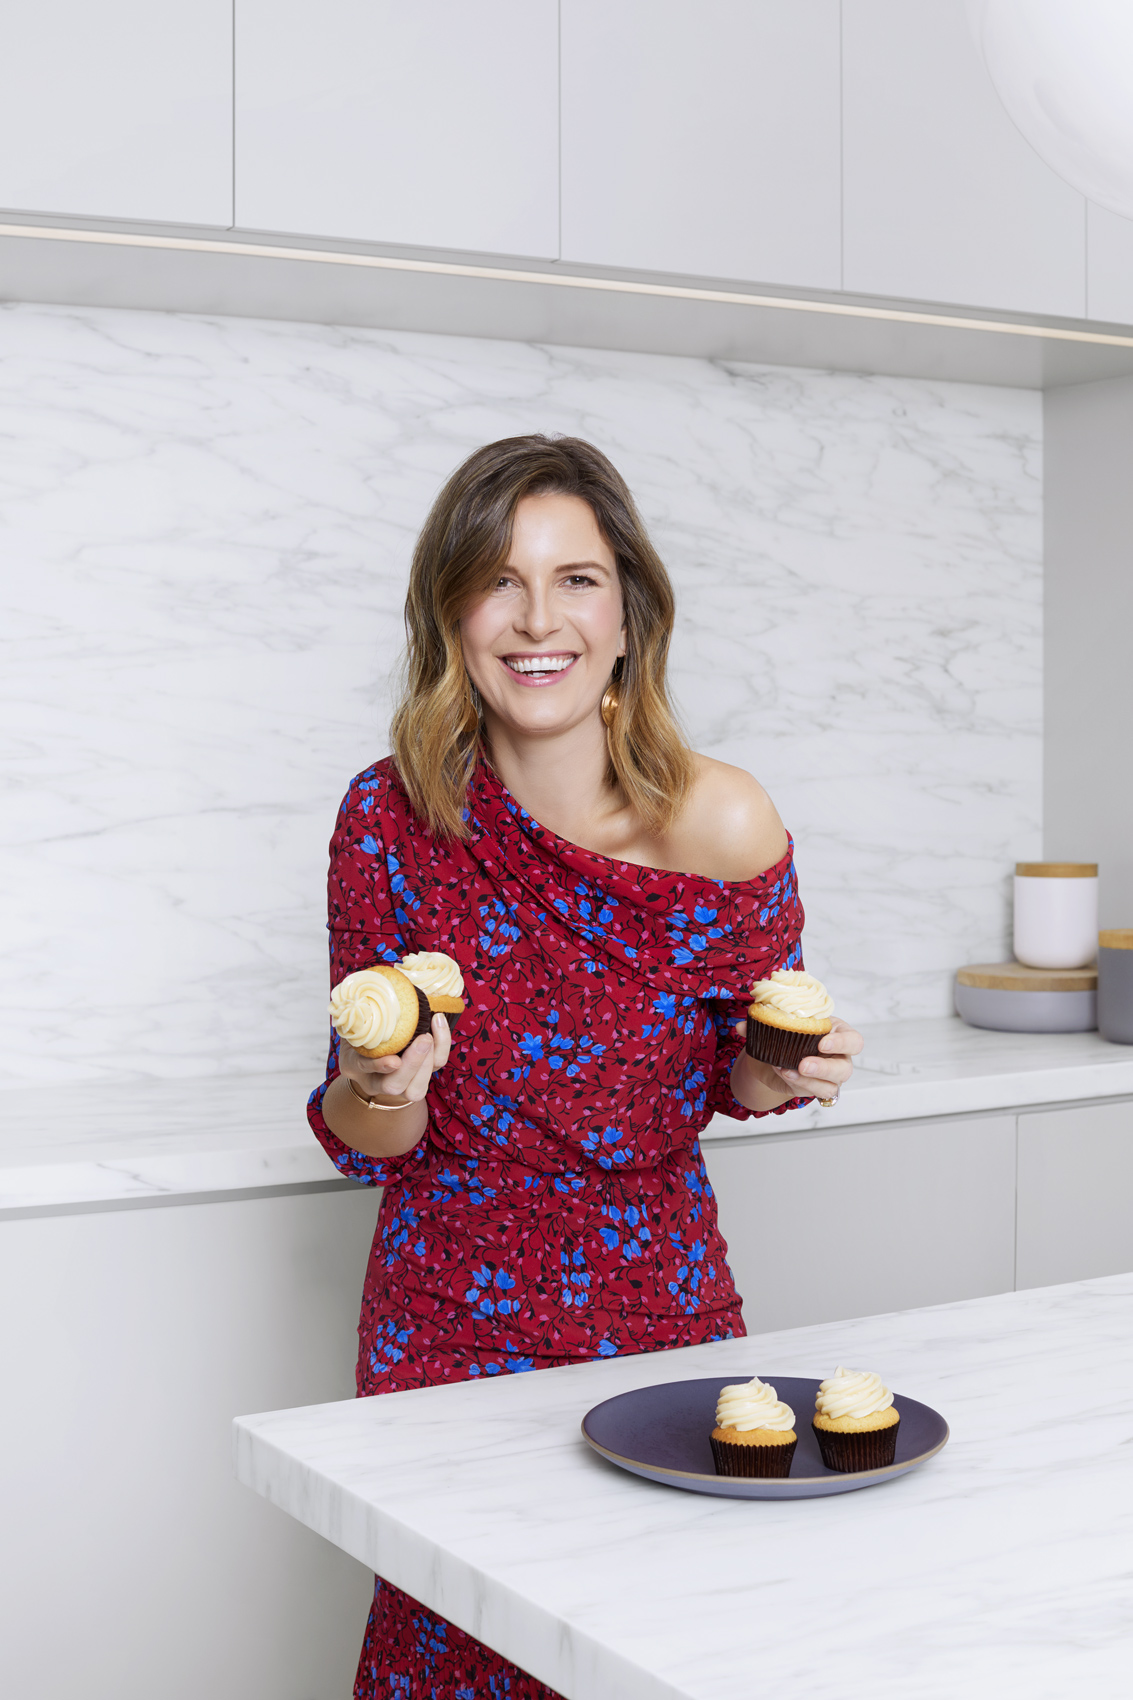 Television host and chef Candace Nelson in her home kitchen. Kim Genevieve Los Angeles Portrait Photographer